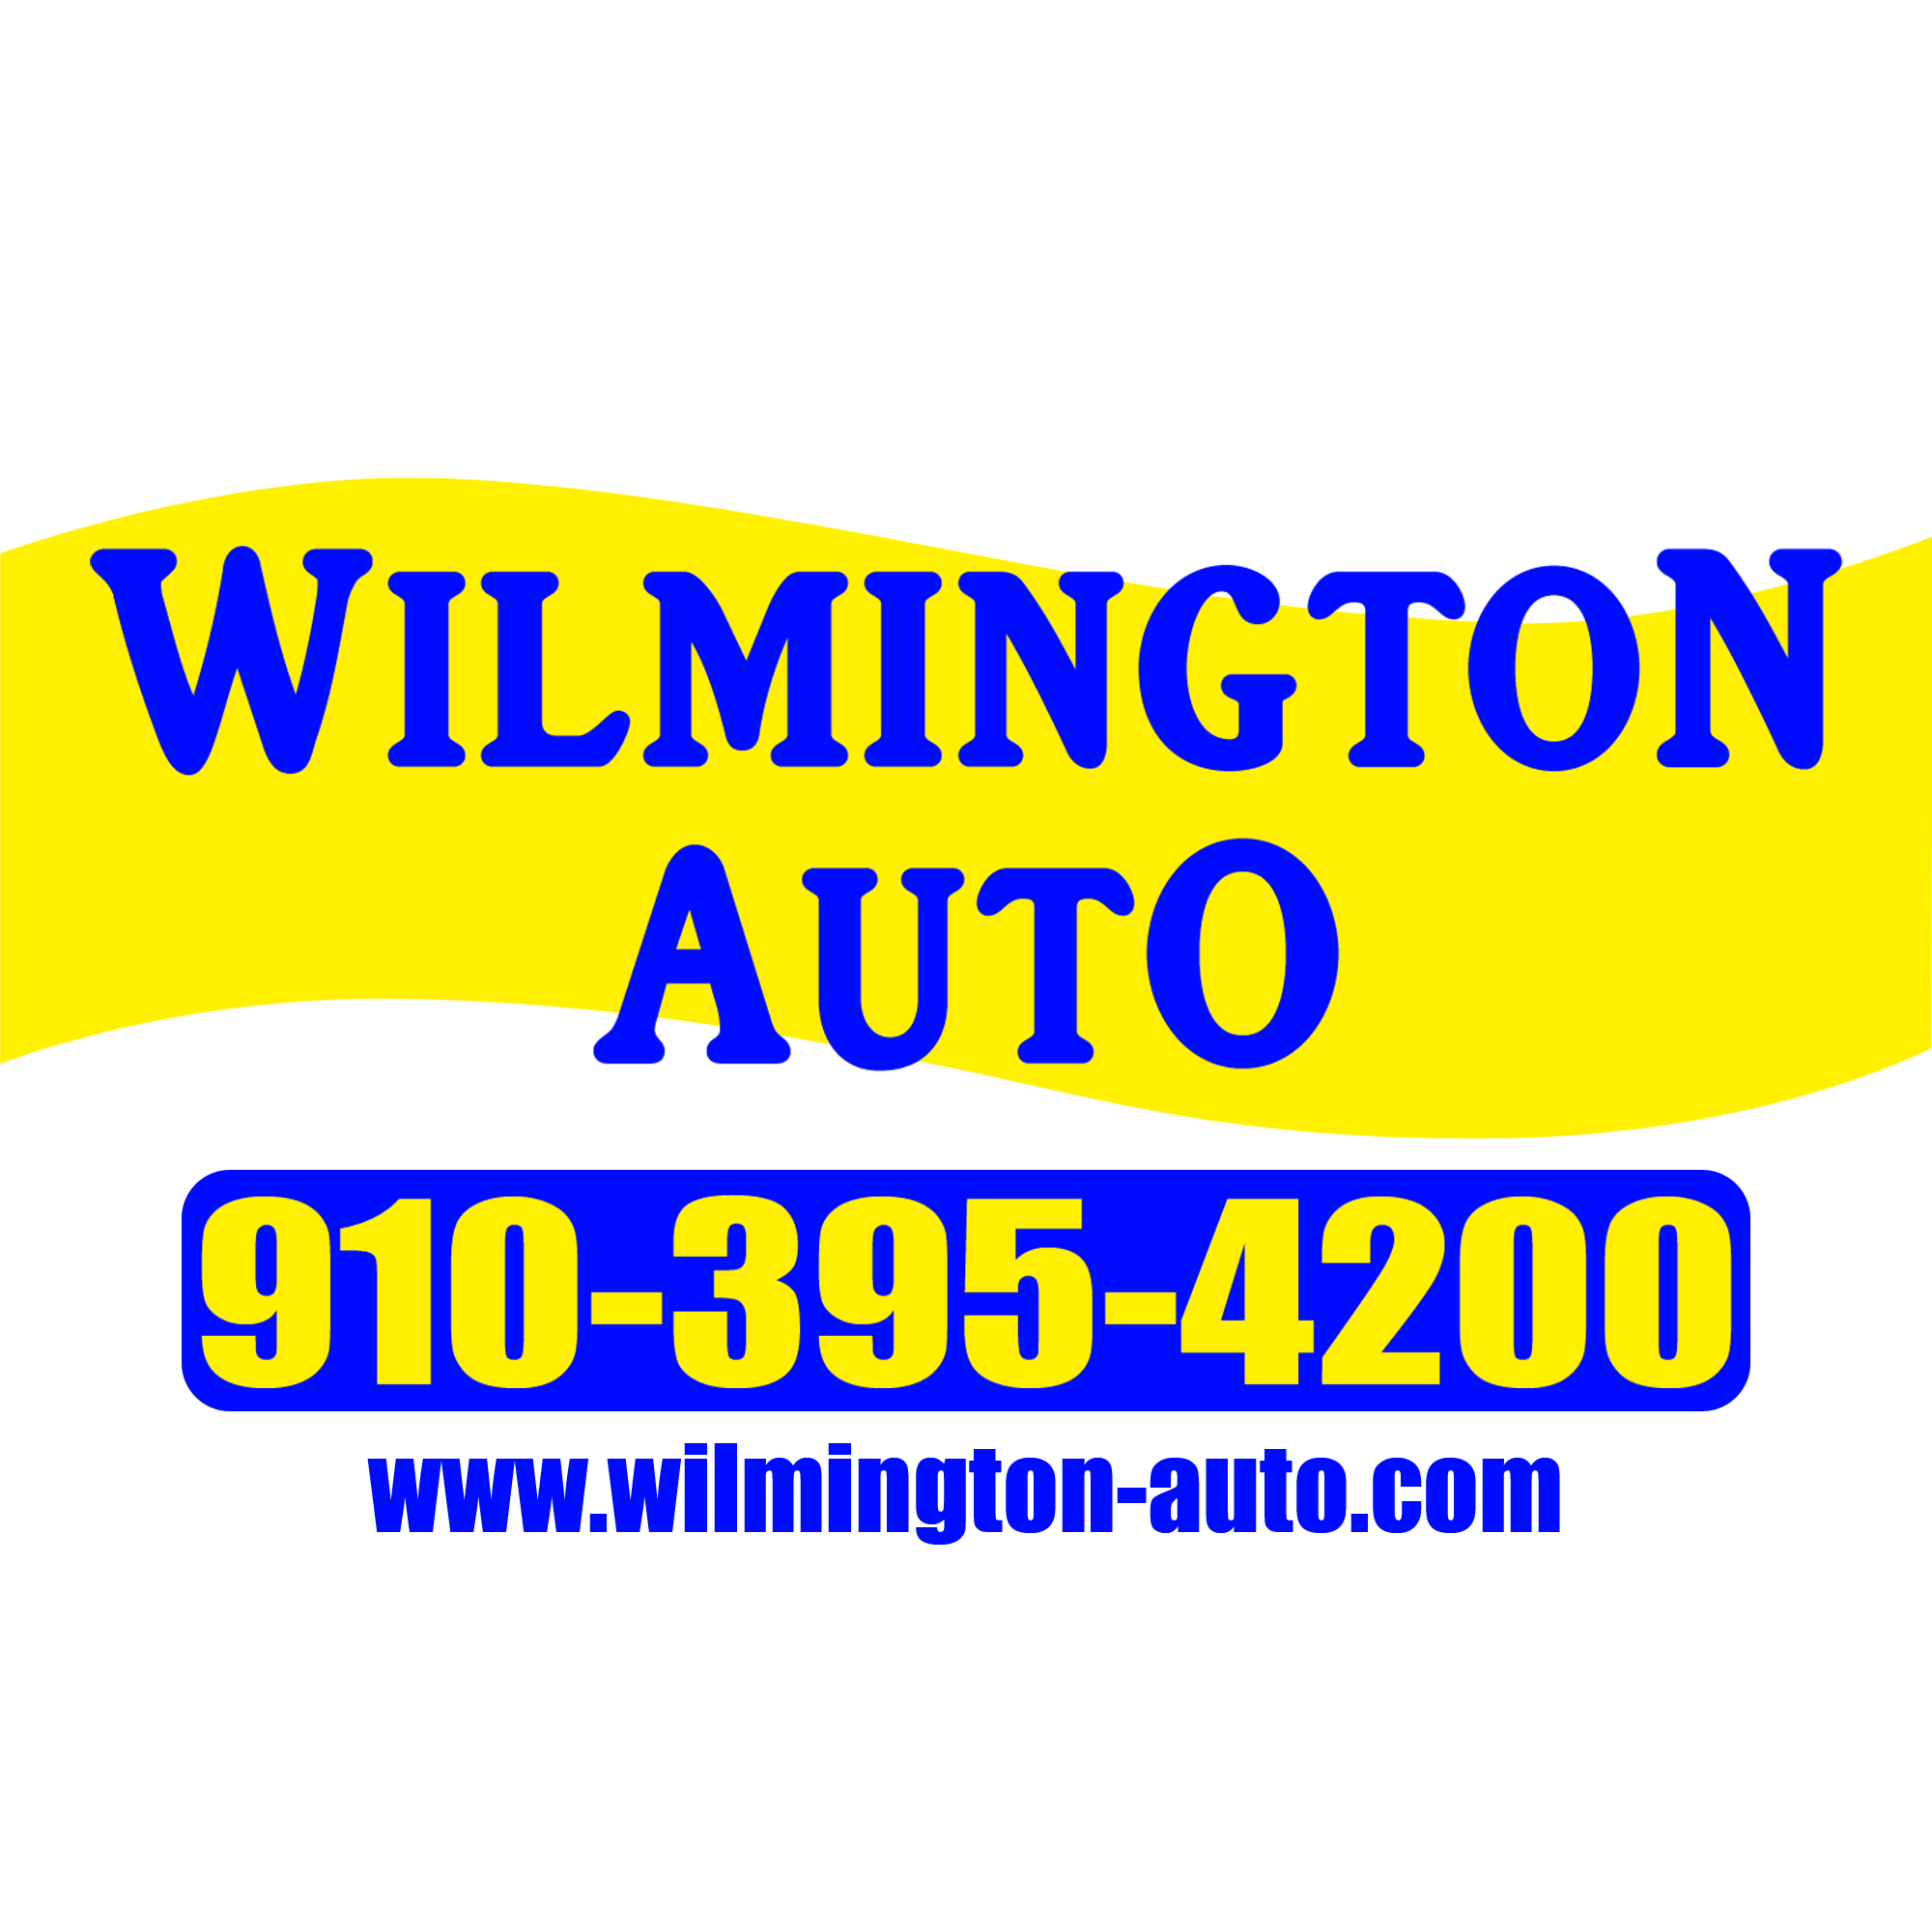 Wilmington Auto LLC